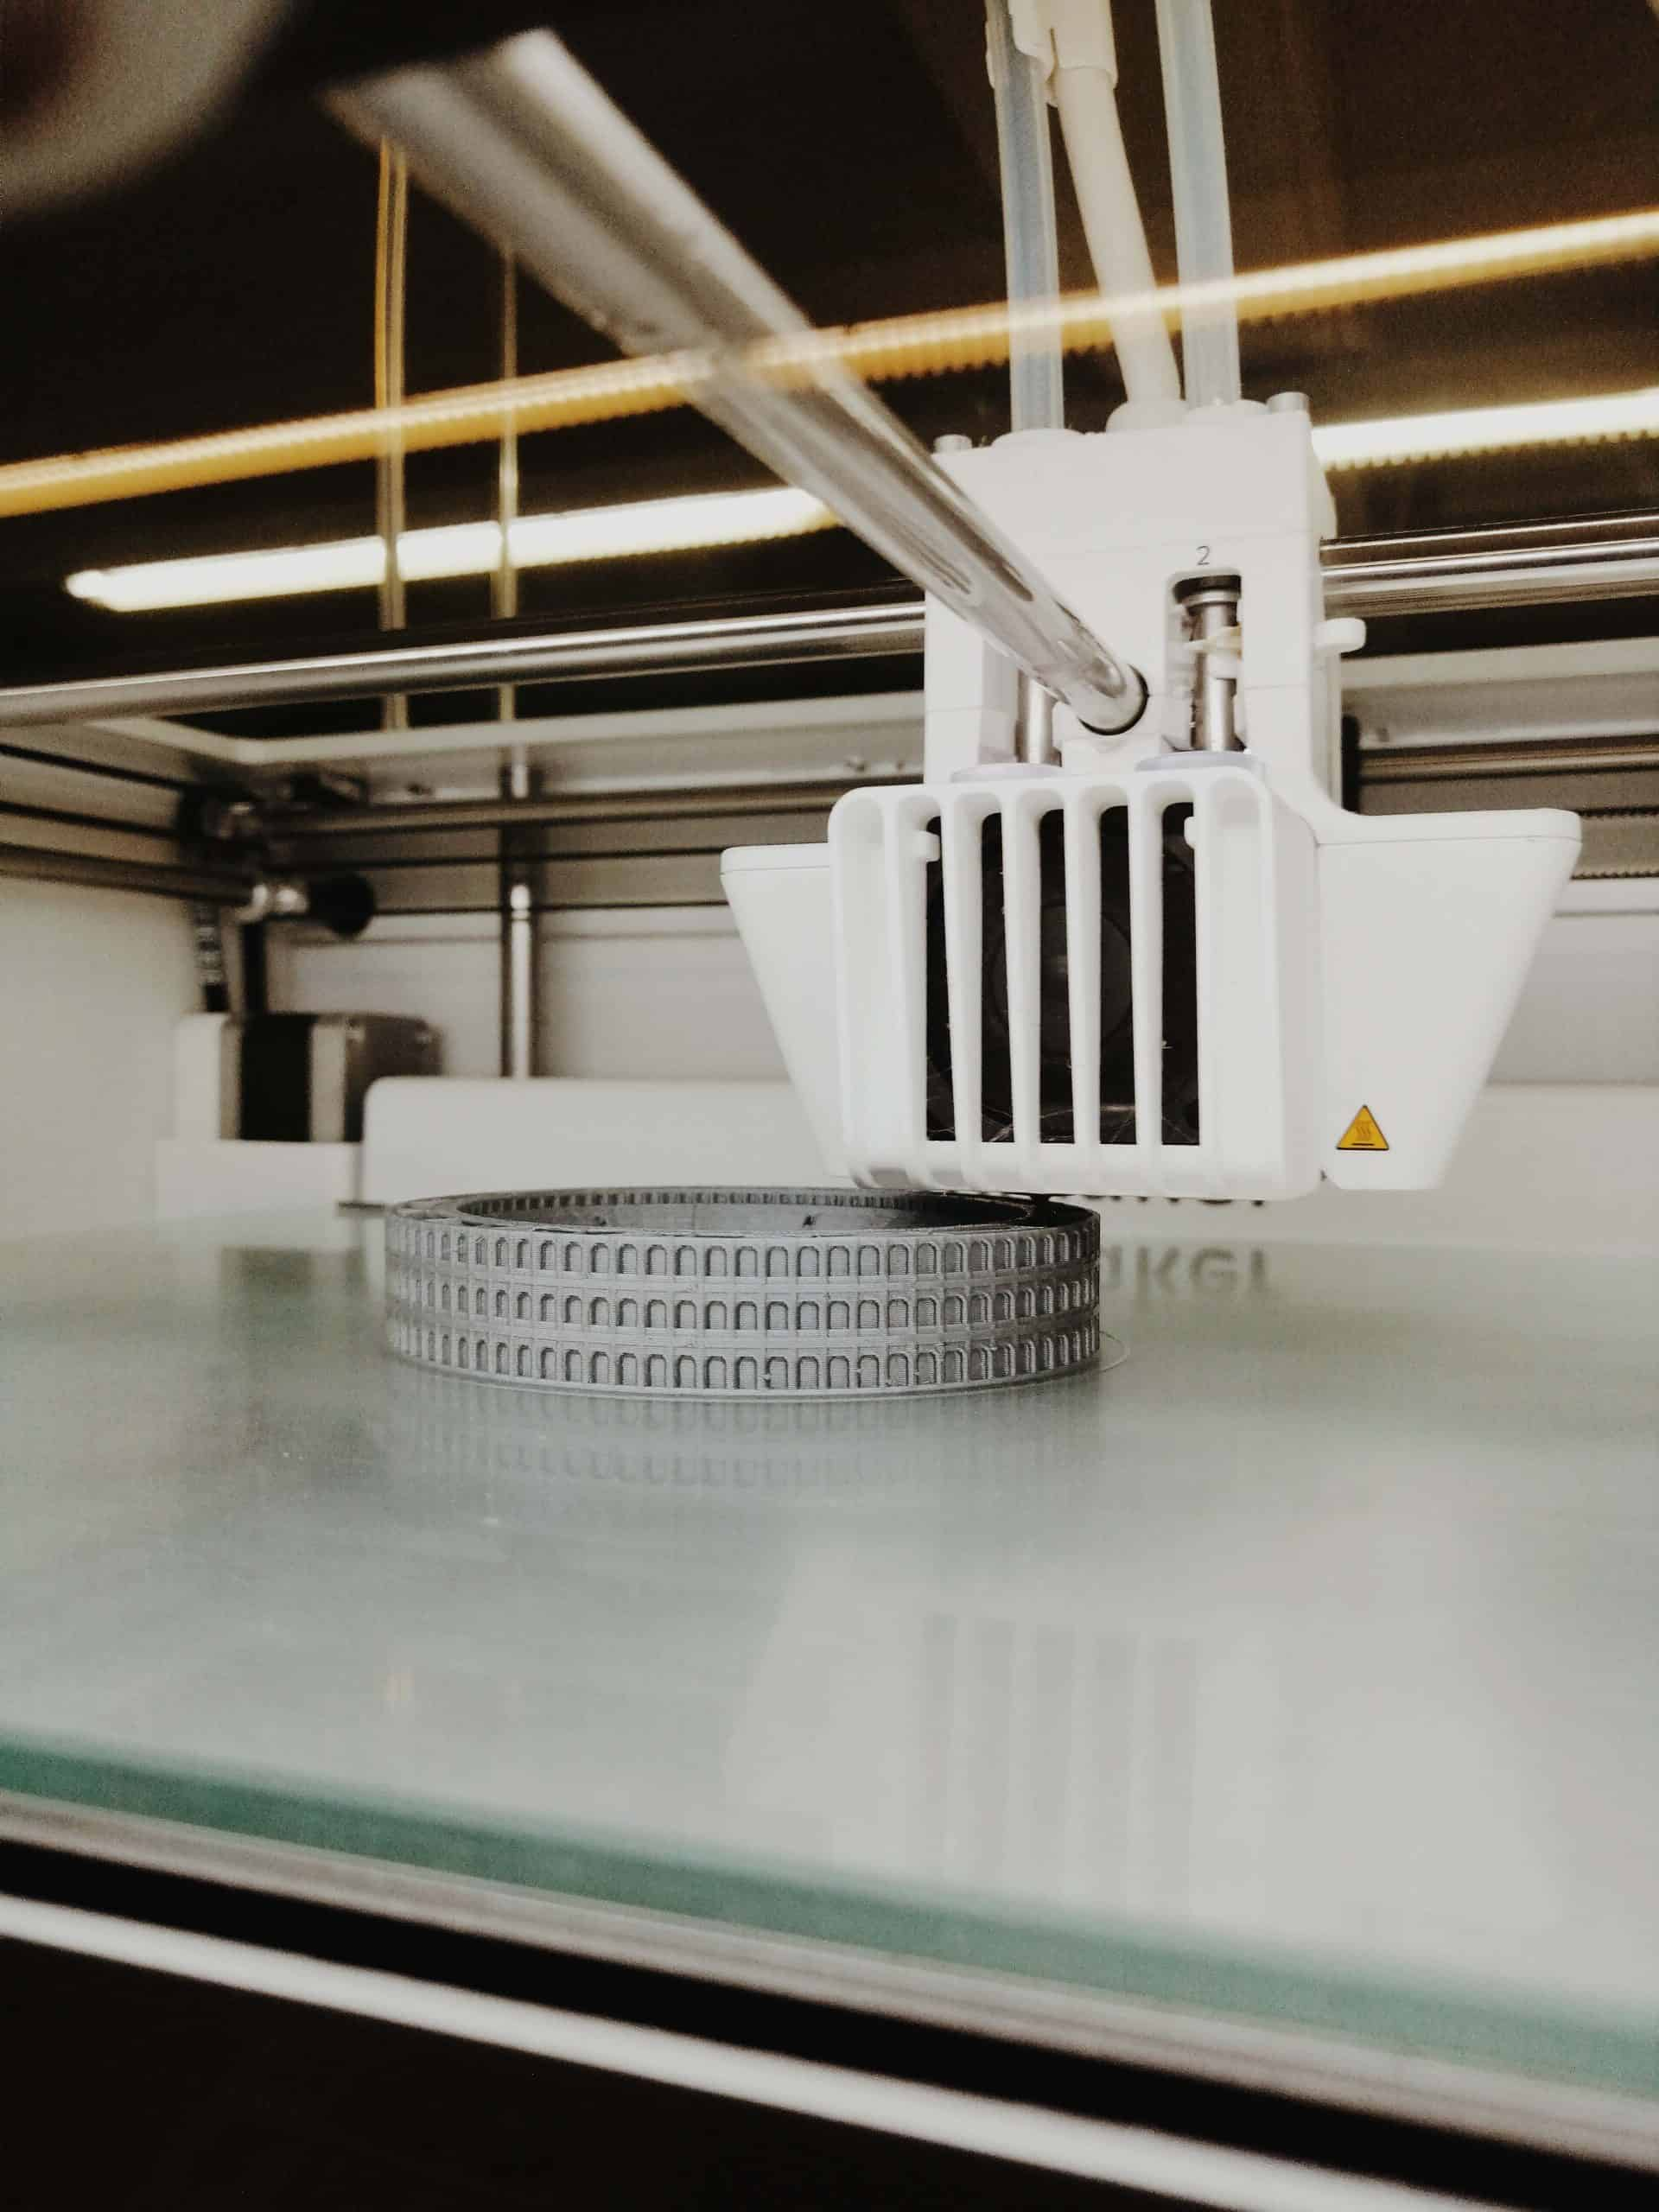 10 ways 3D Printing will disrupt traditional manufacturing